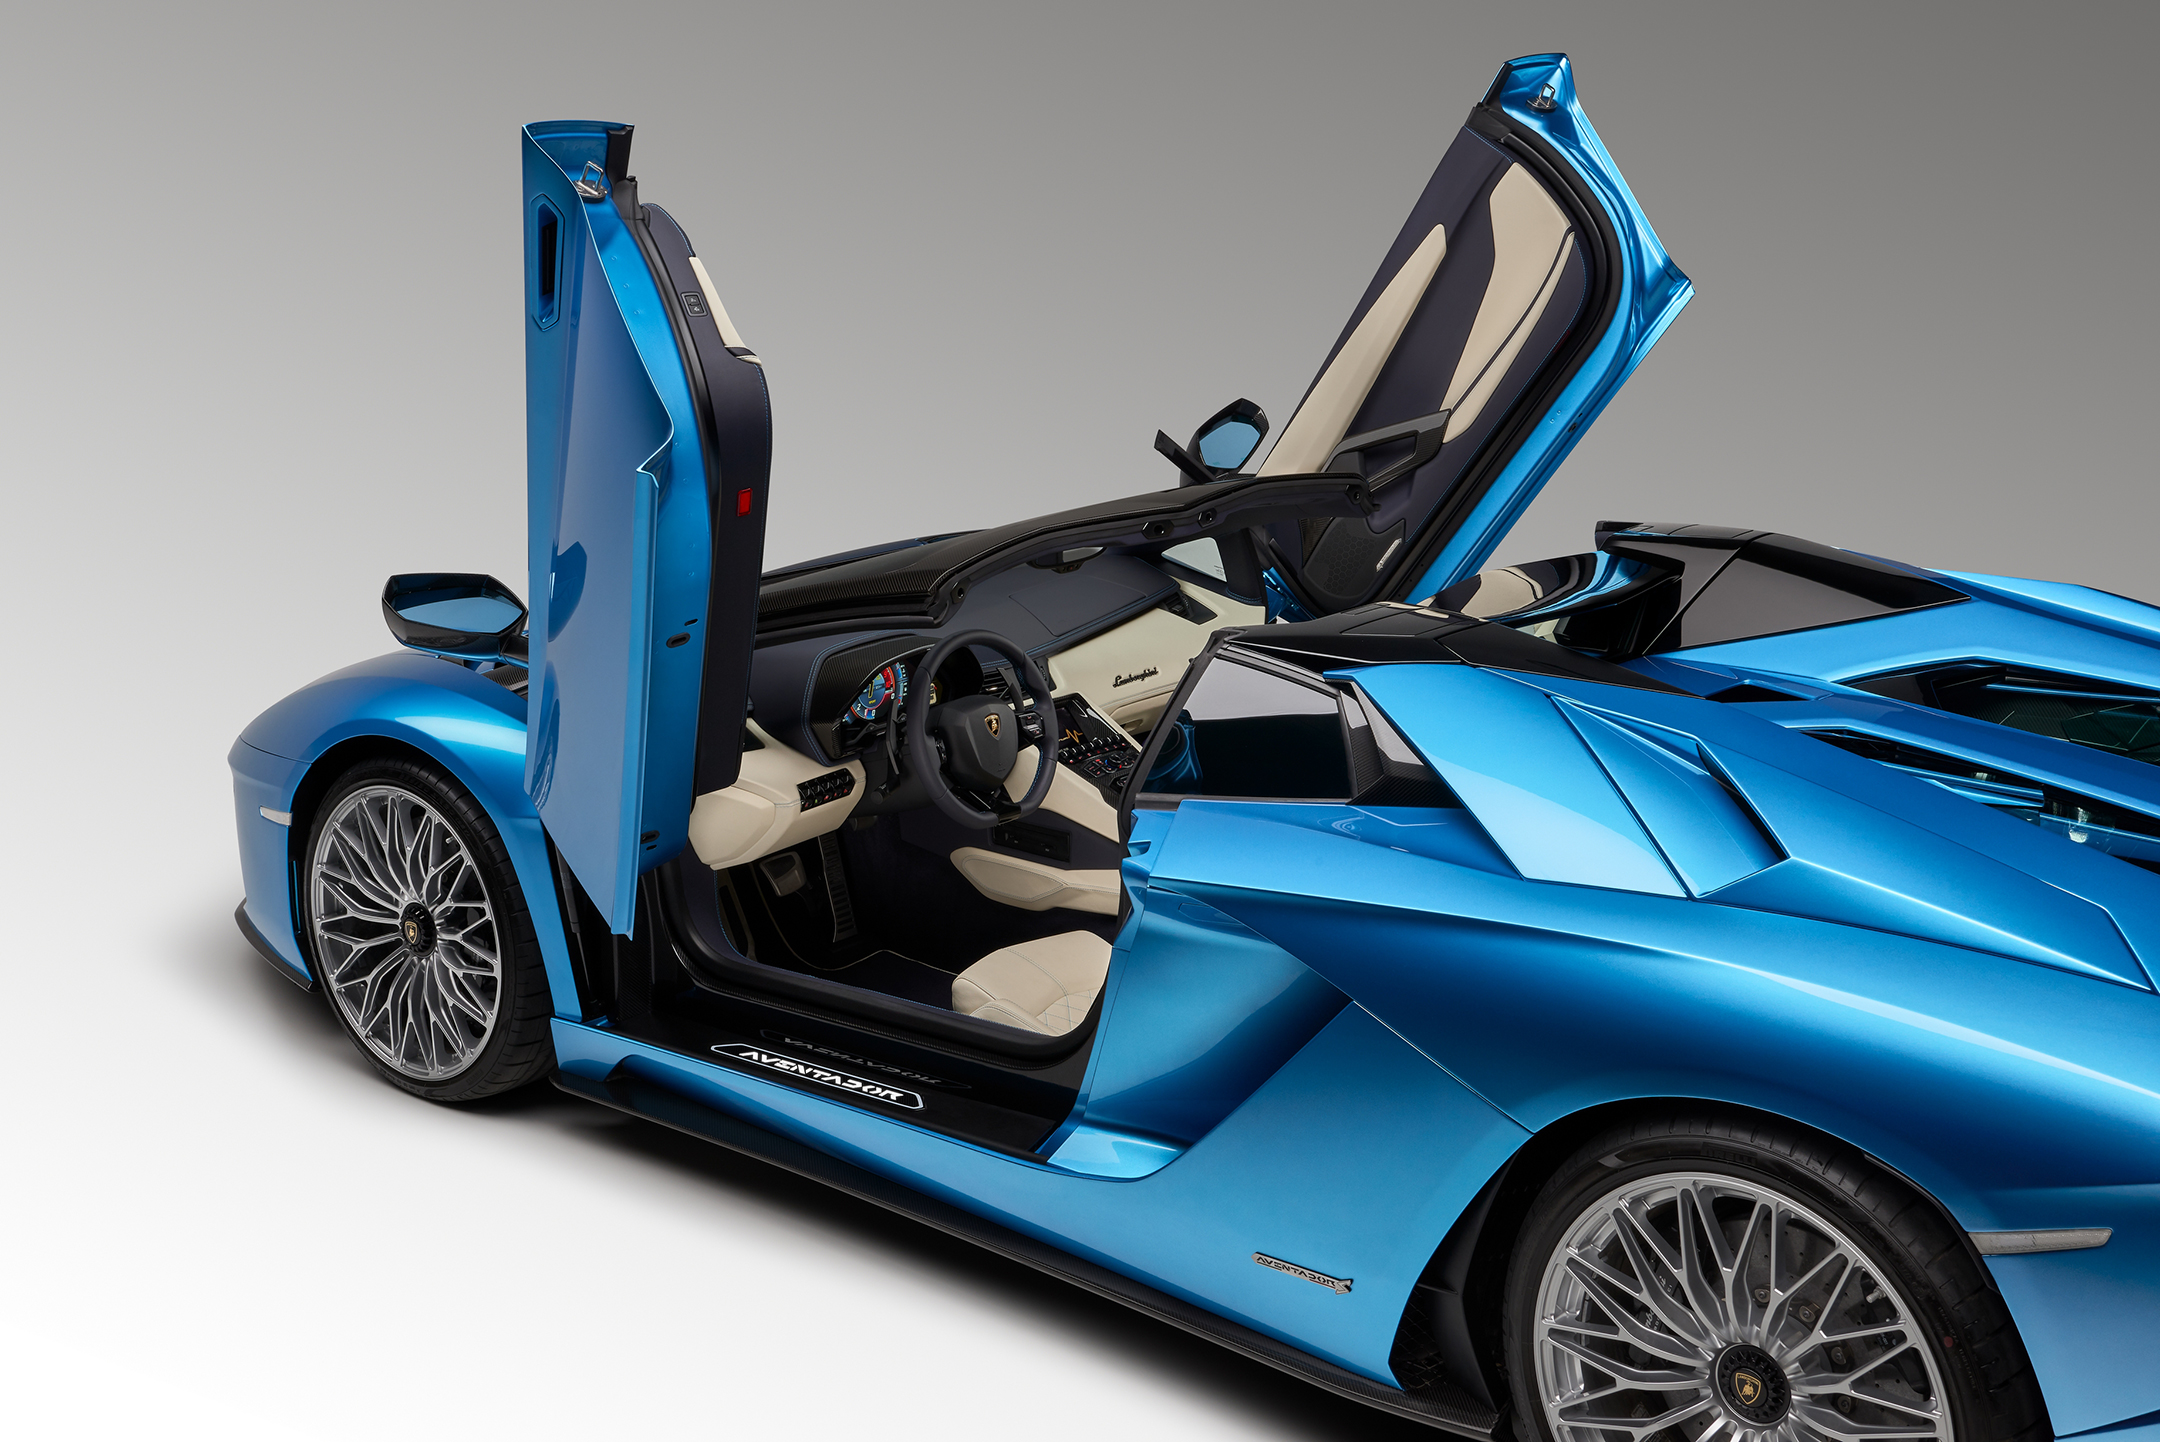 Lamborghini Aventador S Roadster - 2017 - side-face / profil - open doors / portes ouvertes